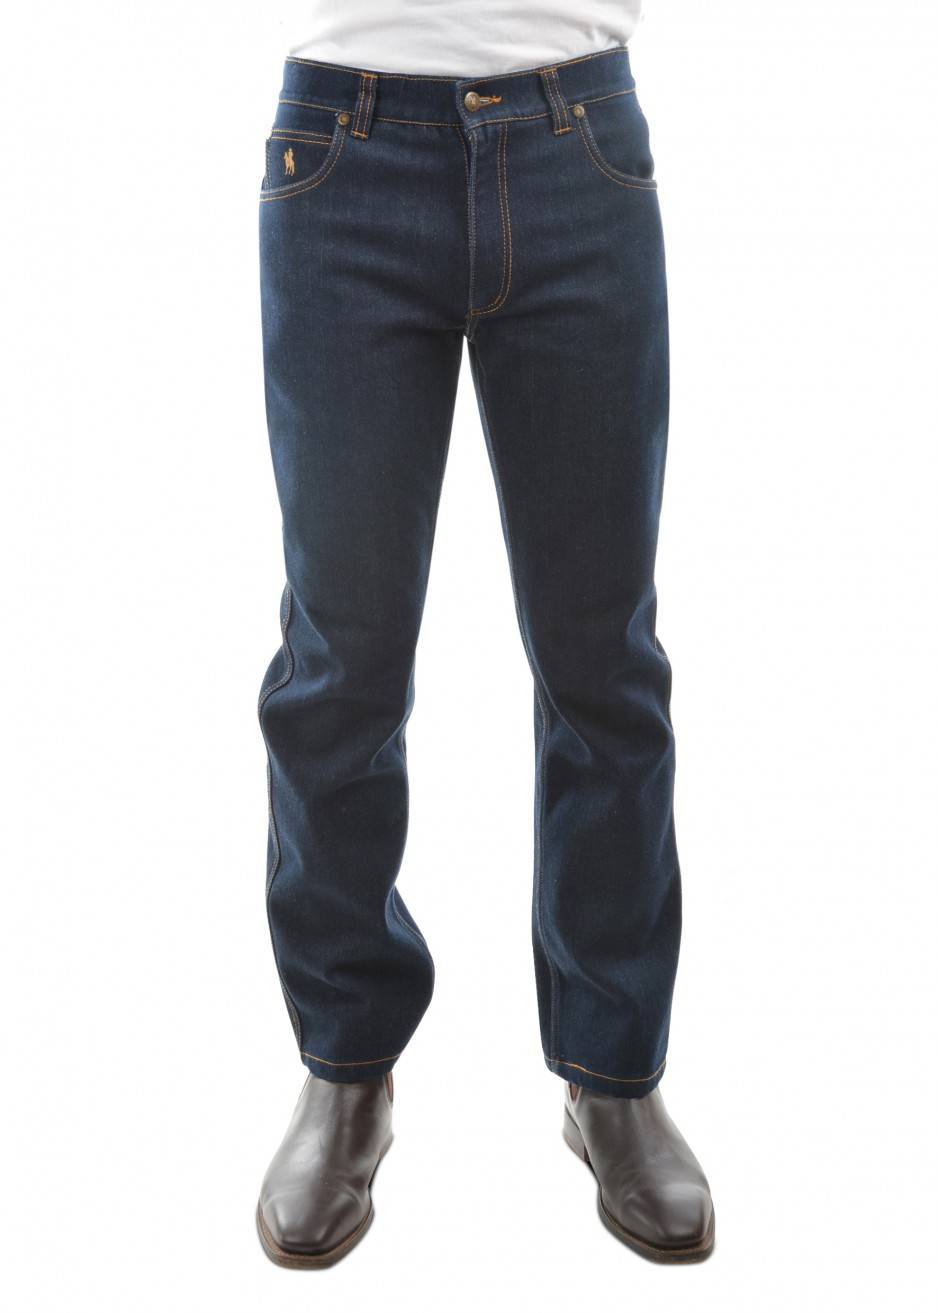 MENS THERMAL COMFORT WAIST JEAN MID-REG-STRAIGHT 32 LEG